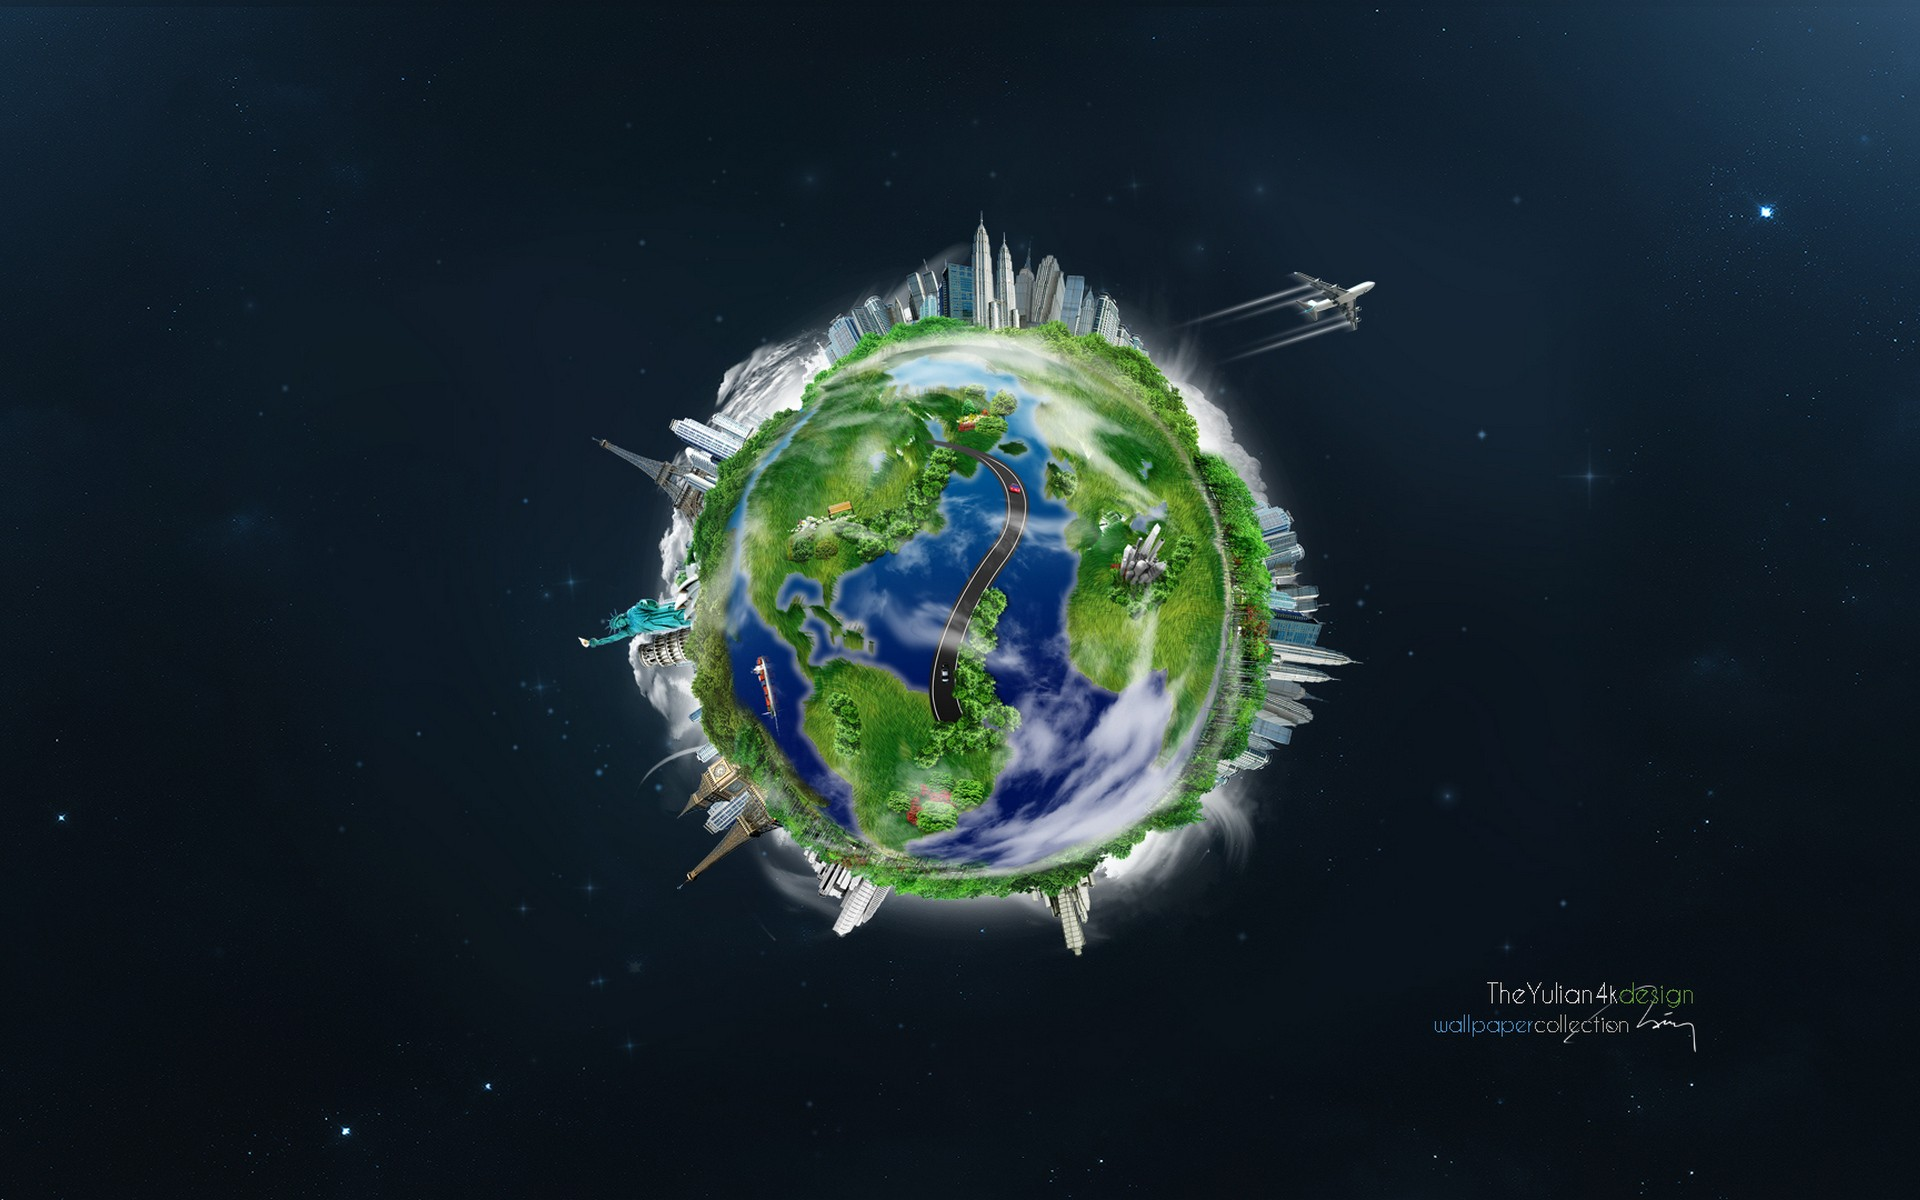 General 1920x1200 world space Earth Statue of Liberty road building Eiffel Tower Leaning Tower of Pisa Big Ben globes